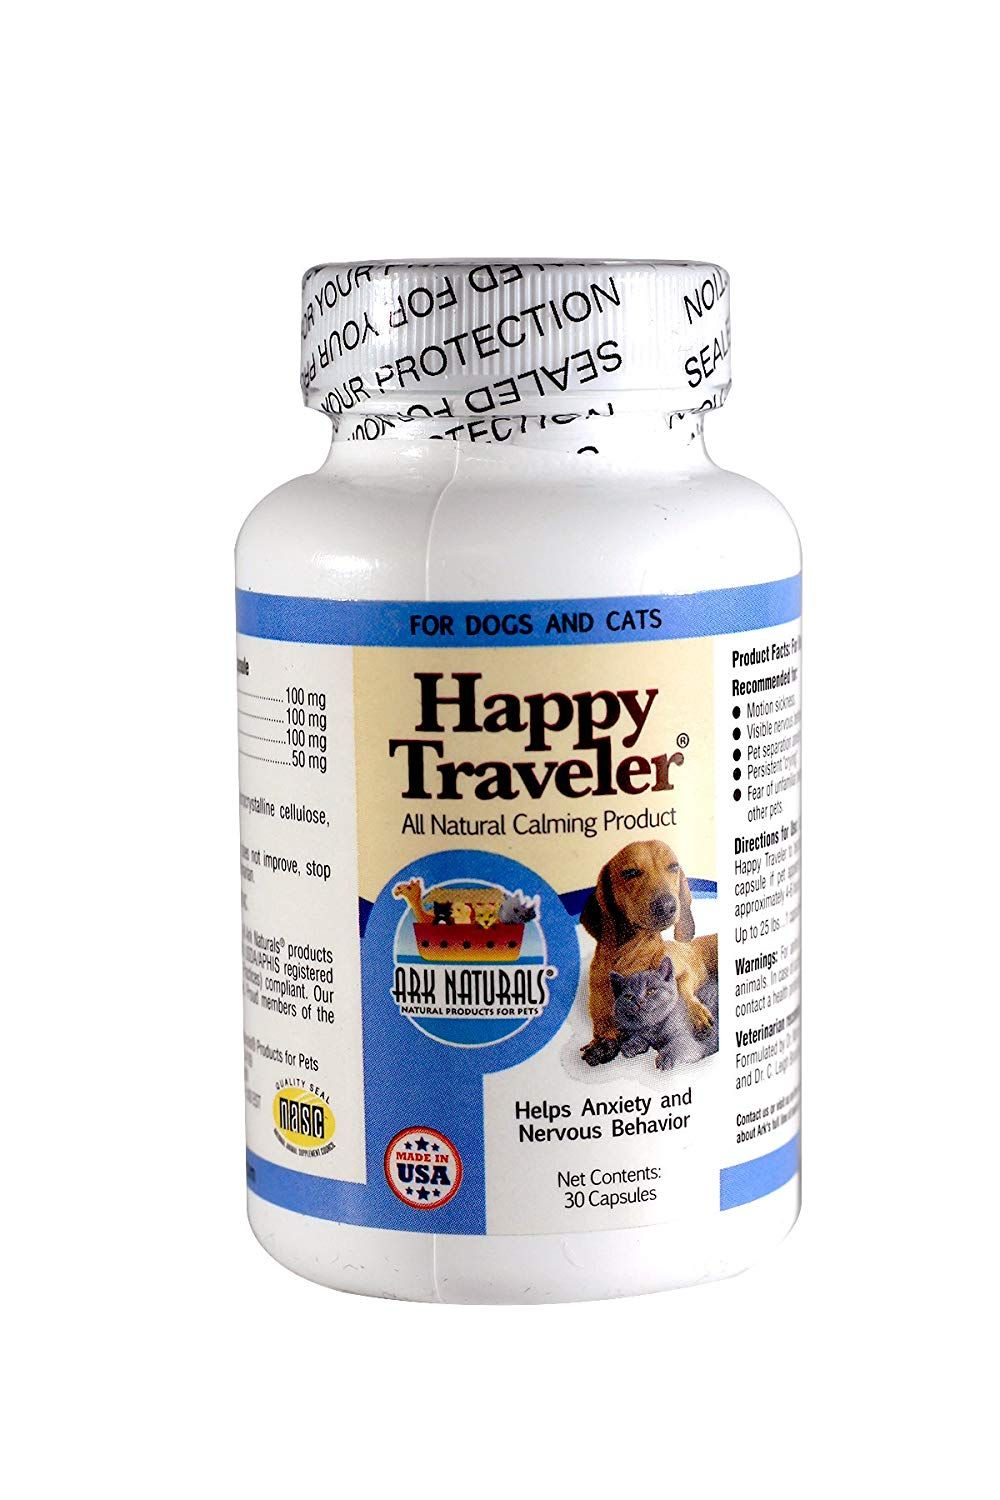 Ark naturals happy traveler for dogs and cats 30count